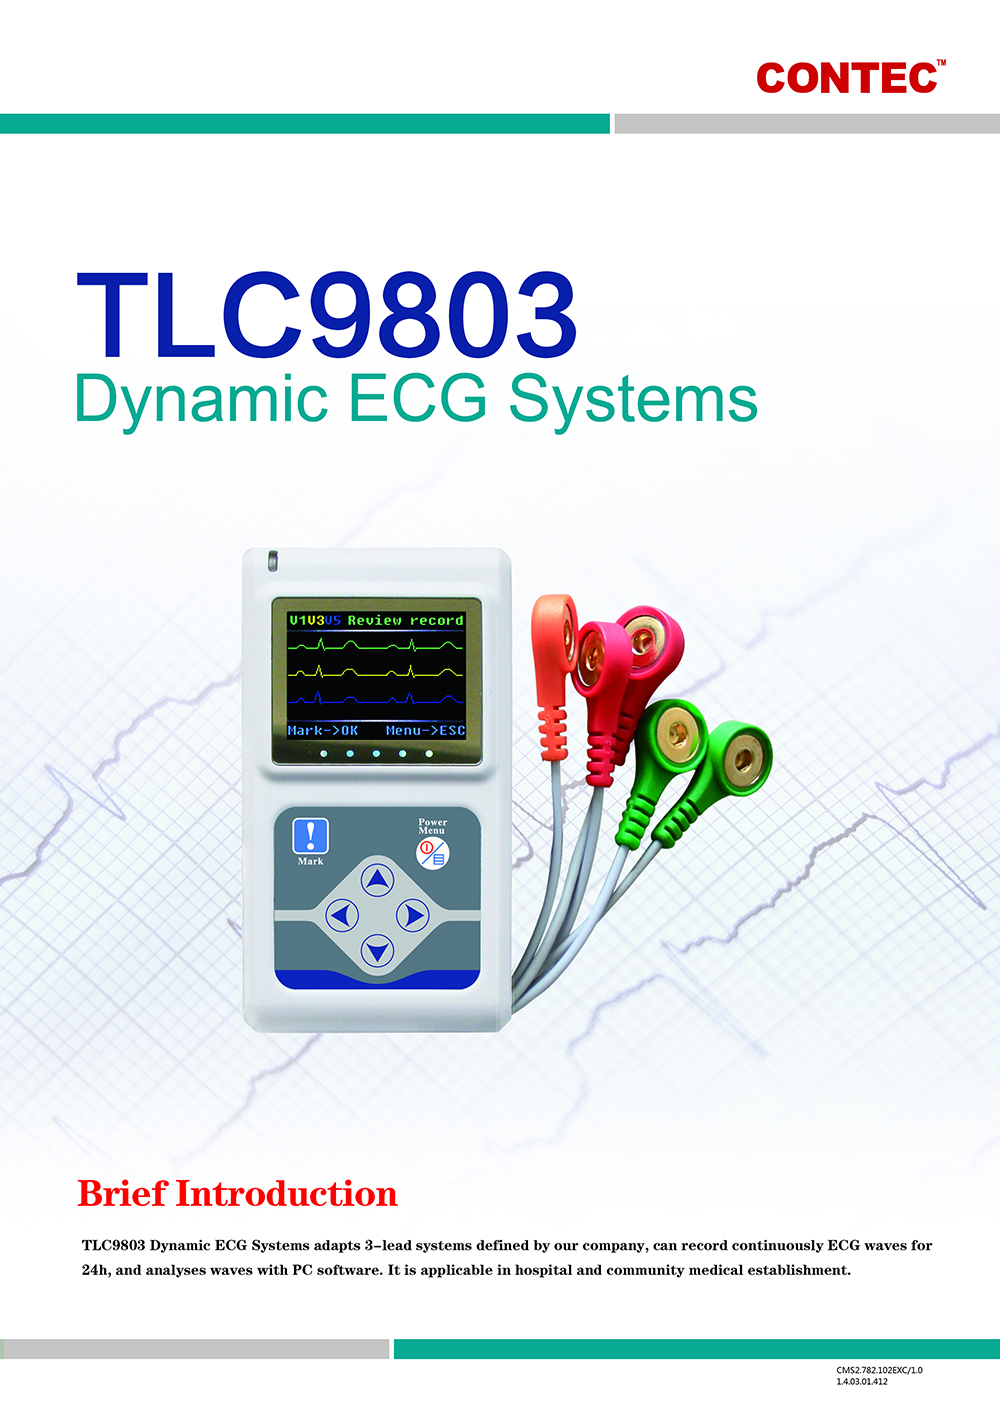 TLC9803 Dynamic ECG Systems Health Care Product - White